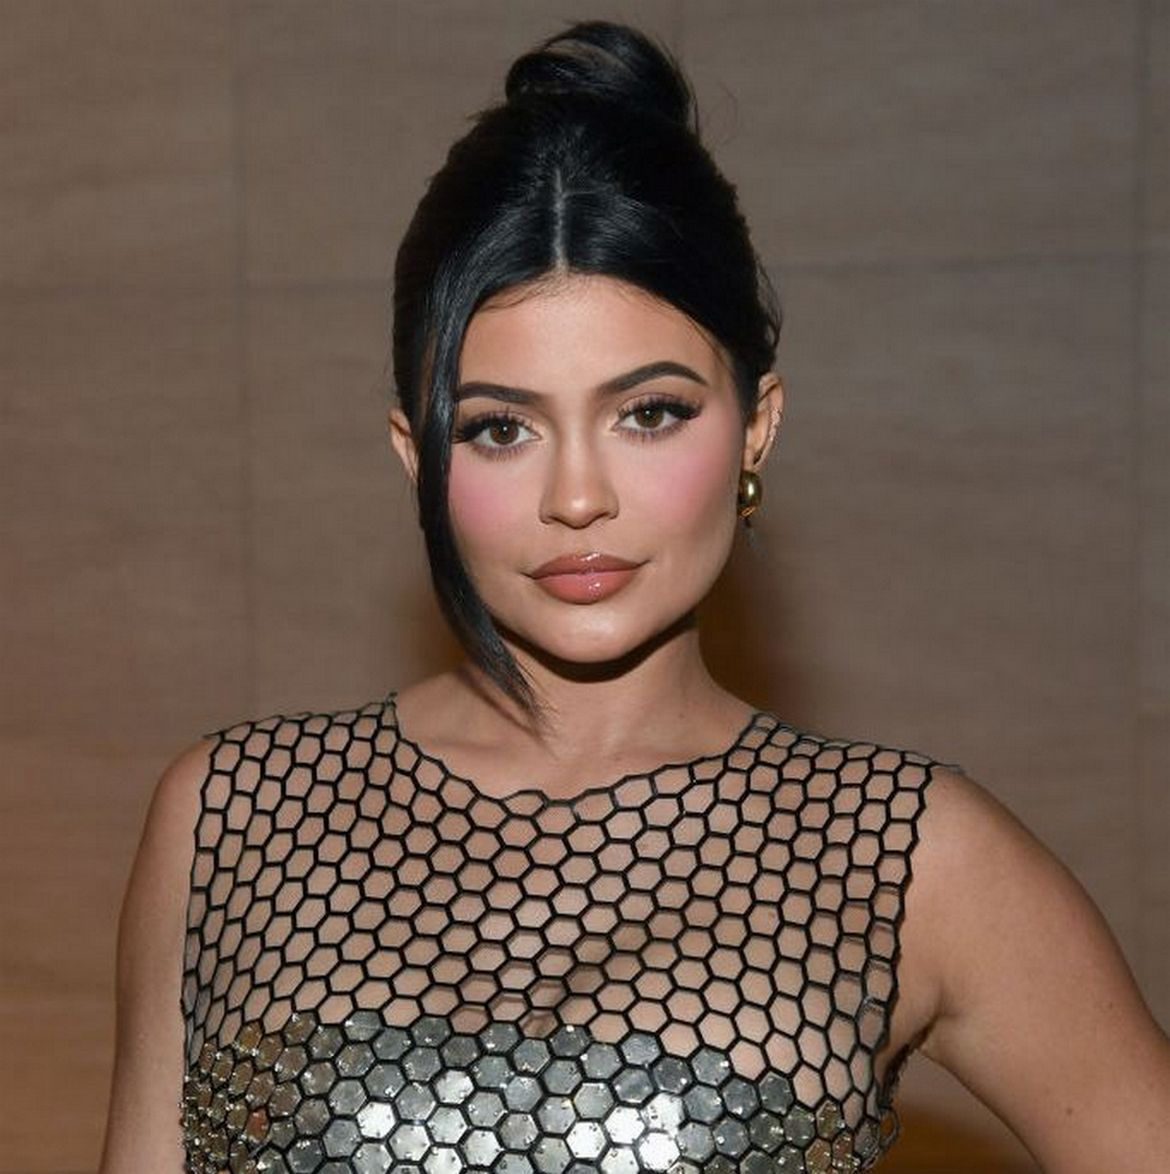 At 22, Kylie Jenner does it again - For the second time in a row she is the Forbes youngest self made billionaire in the world : Luxurylaunches